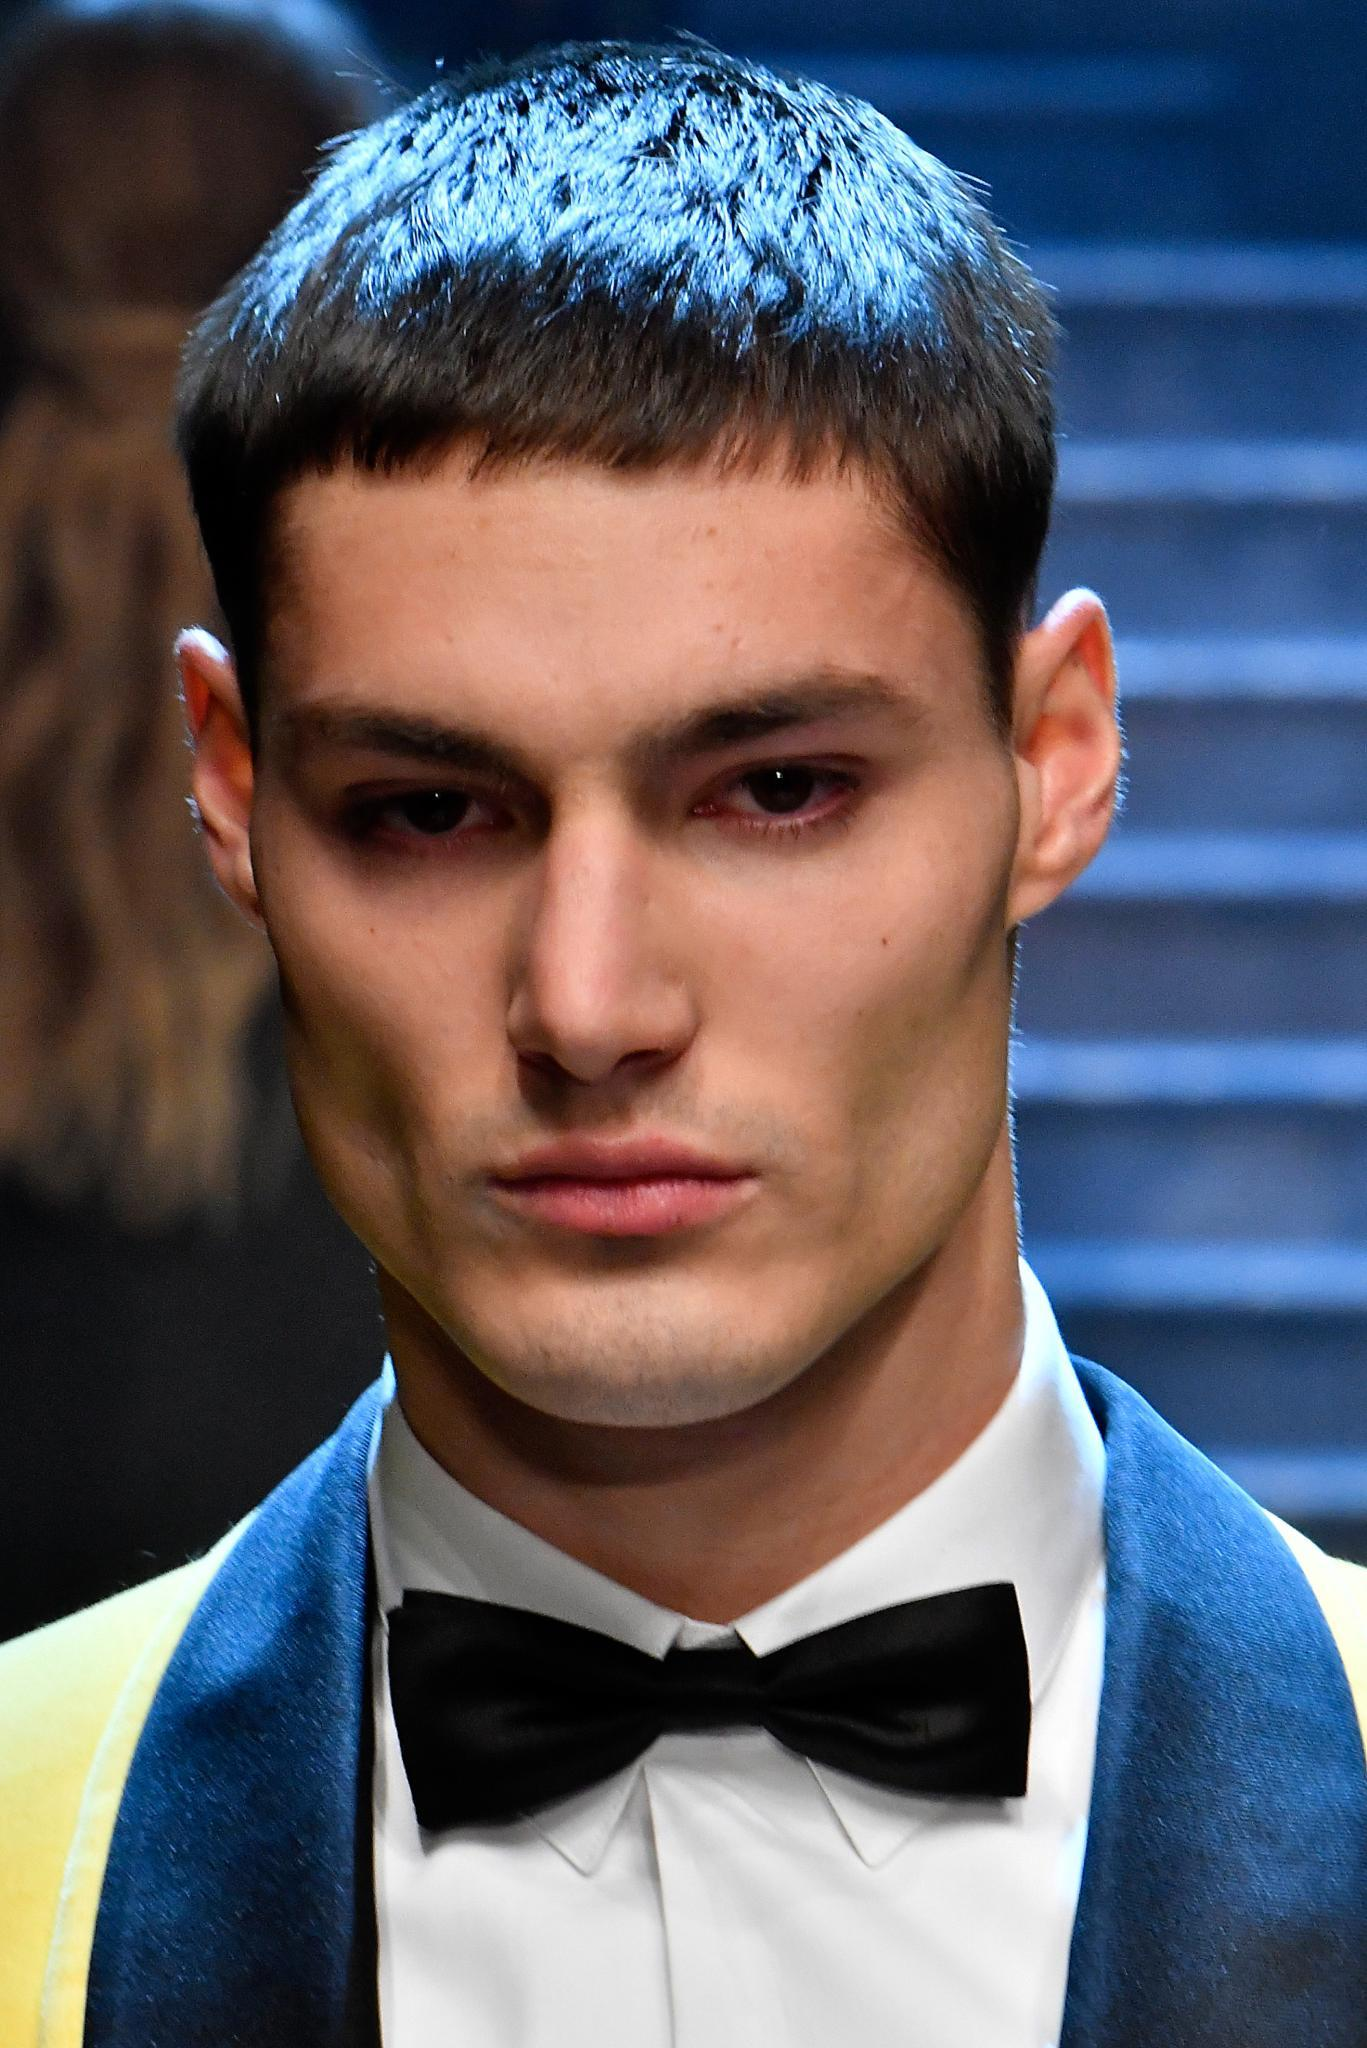 Crop haircut: Close-up of a brown haired model with a French crop haircut, wearing a tux